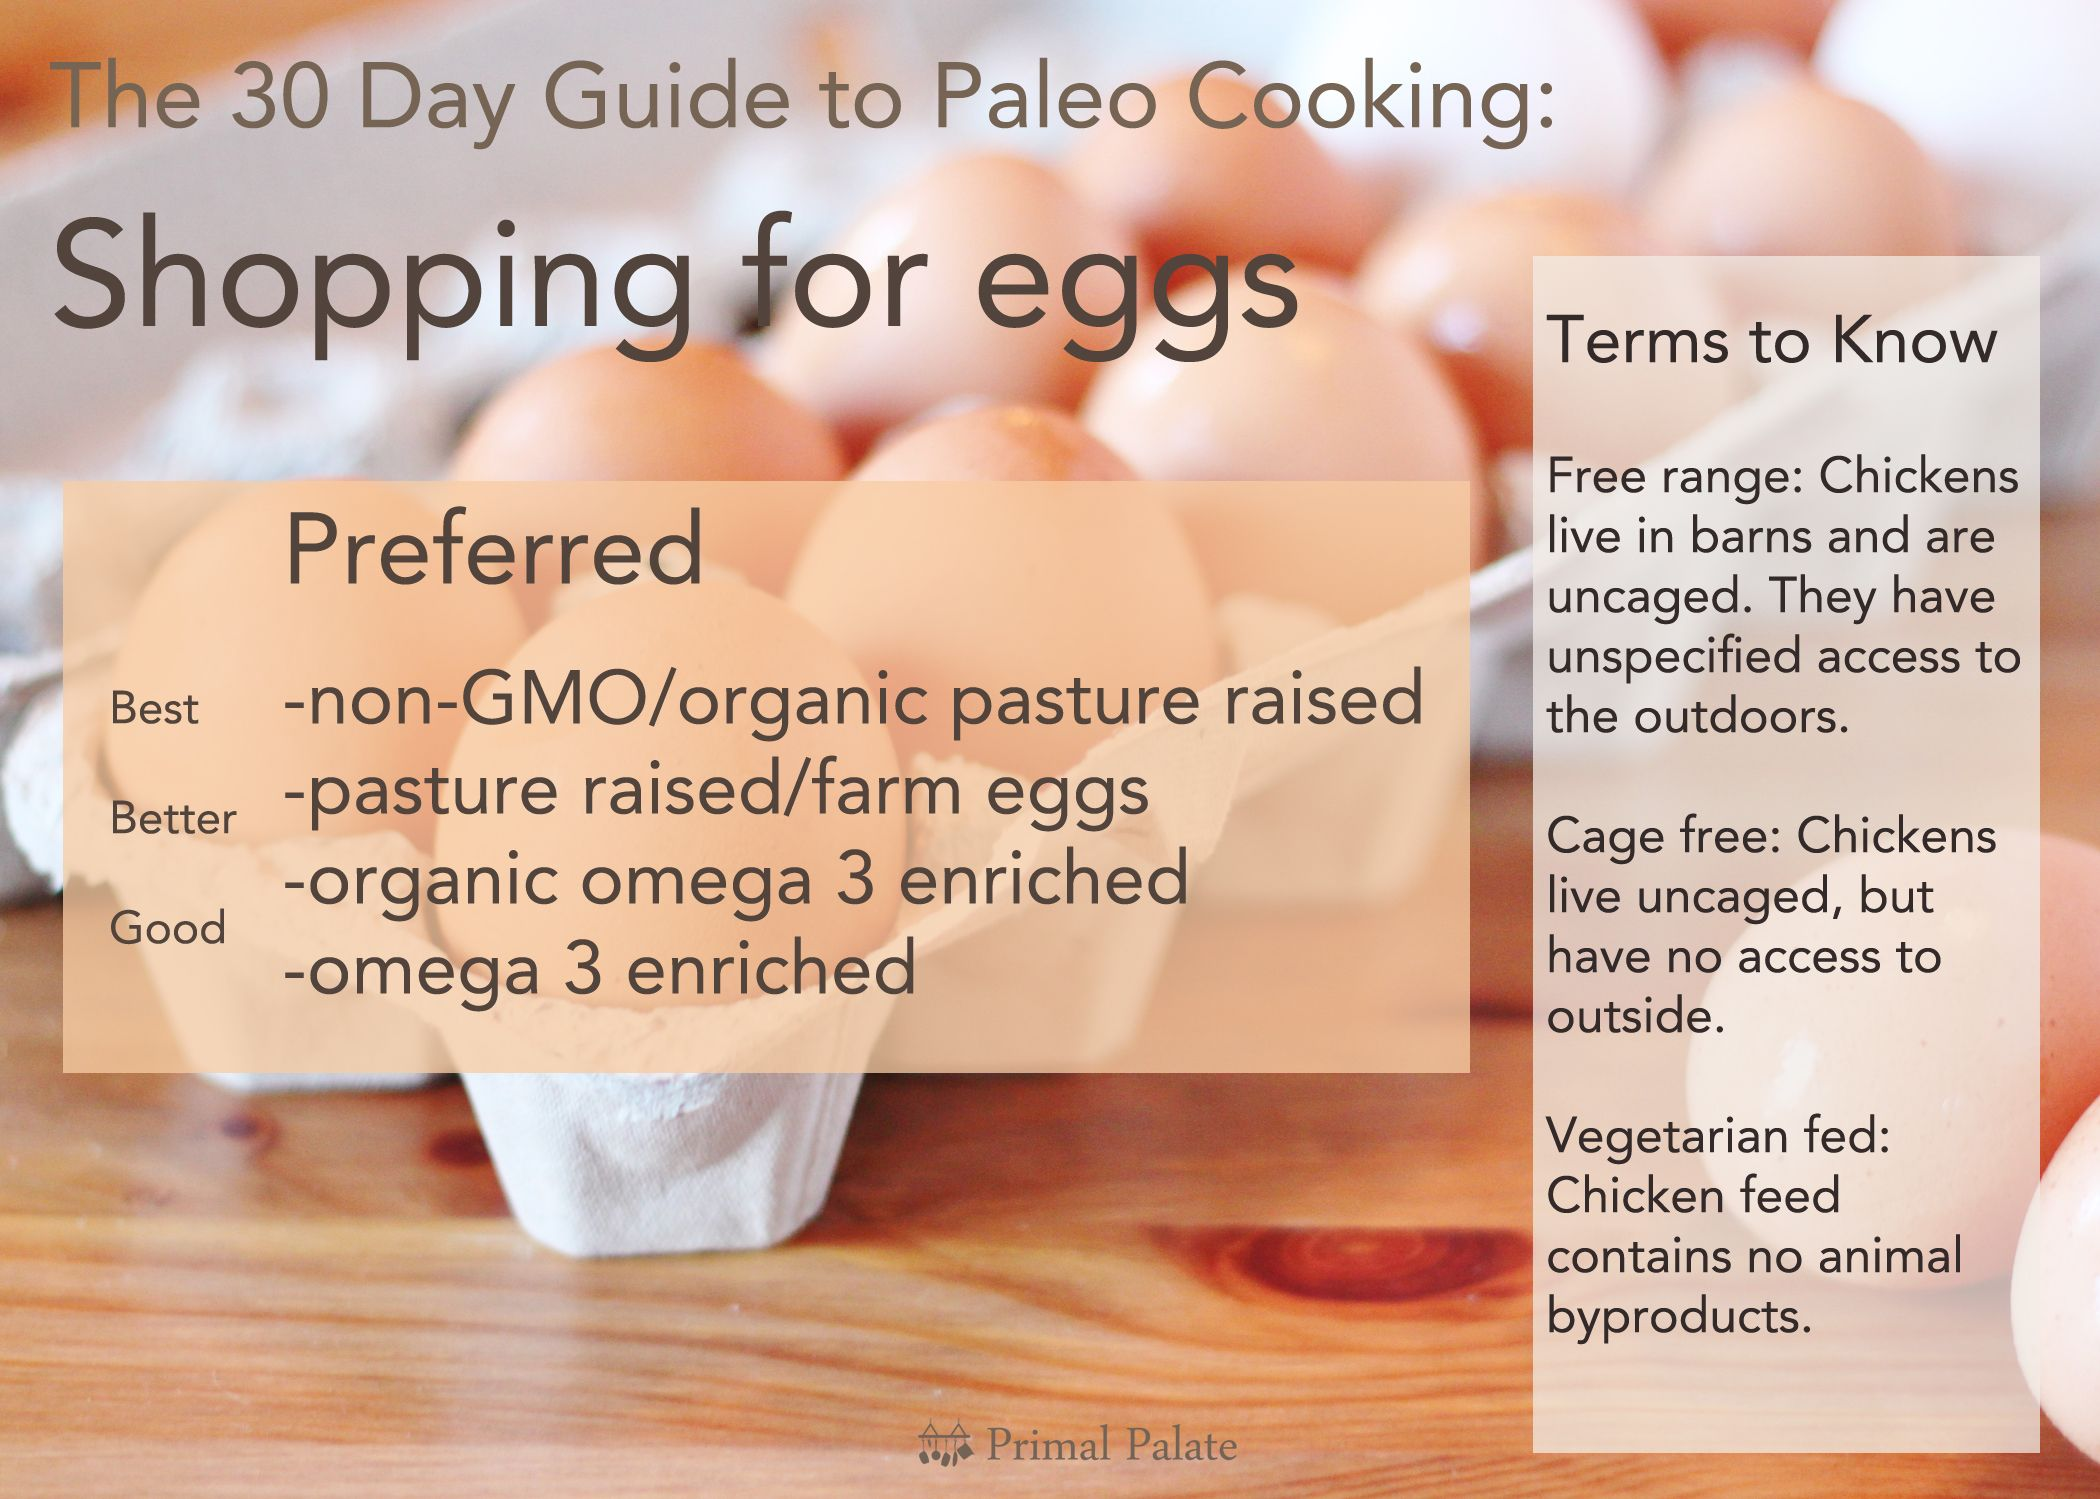 Paleo tip when shopping for eggs pasture raised is best omega 3 30 day guide to paleo meal plan primal palate paleo recipes malvernweather Image collections